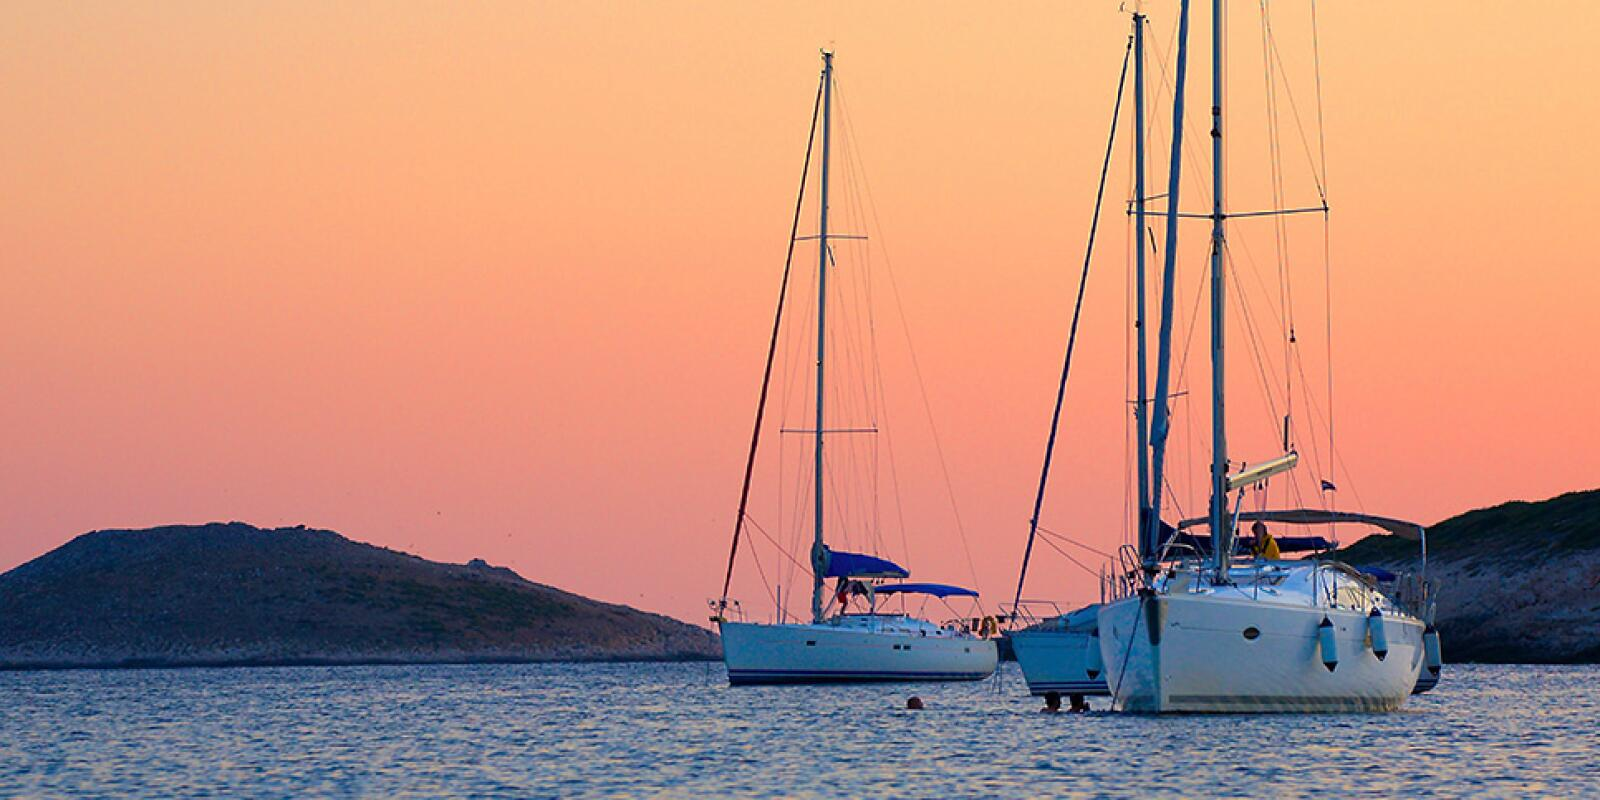 Courses & regatta: Sailing holidays in French Riviera and Porquerolles